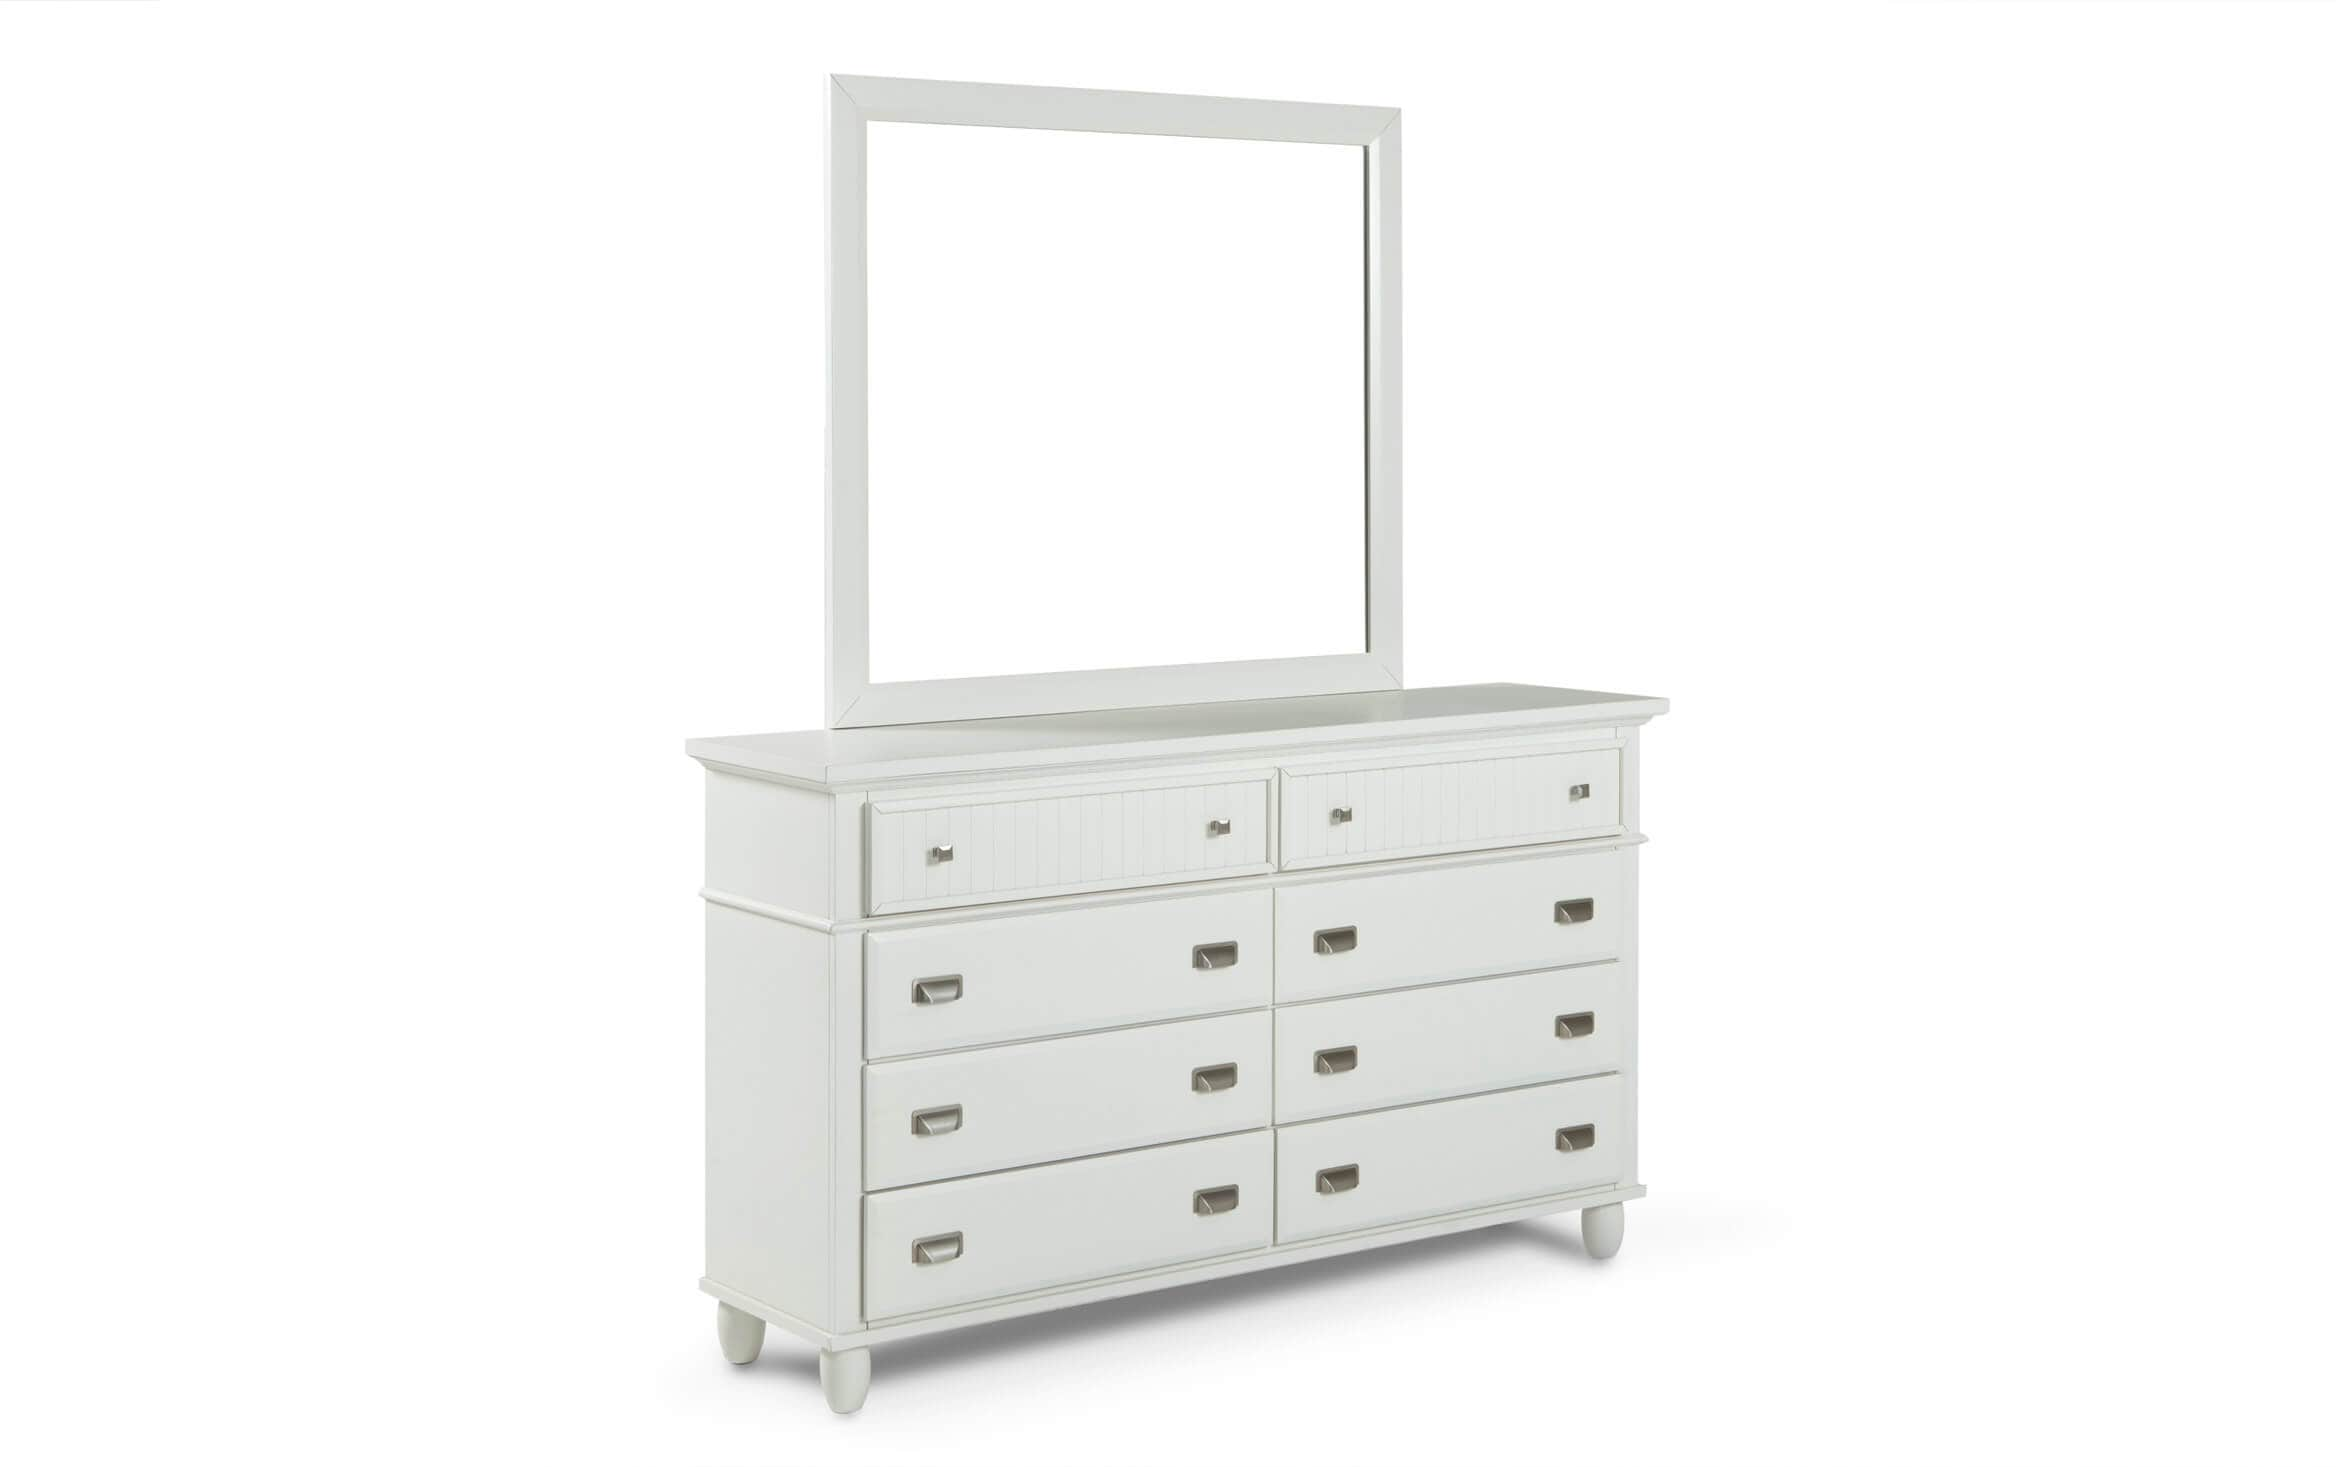 Spencer White Dresser Mirror Bobs